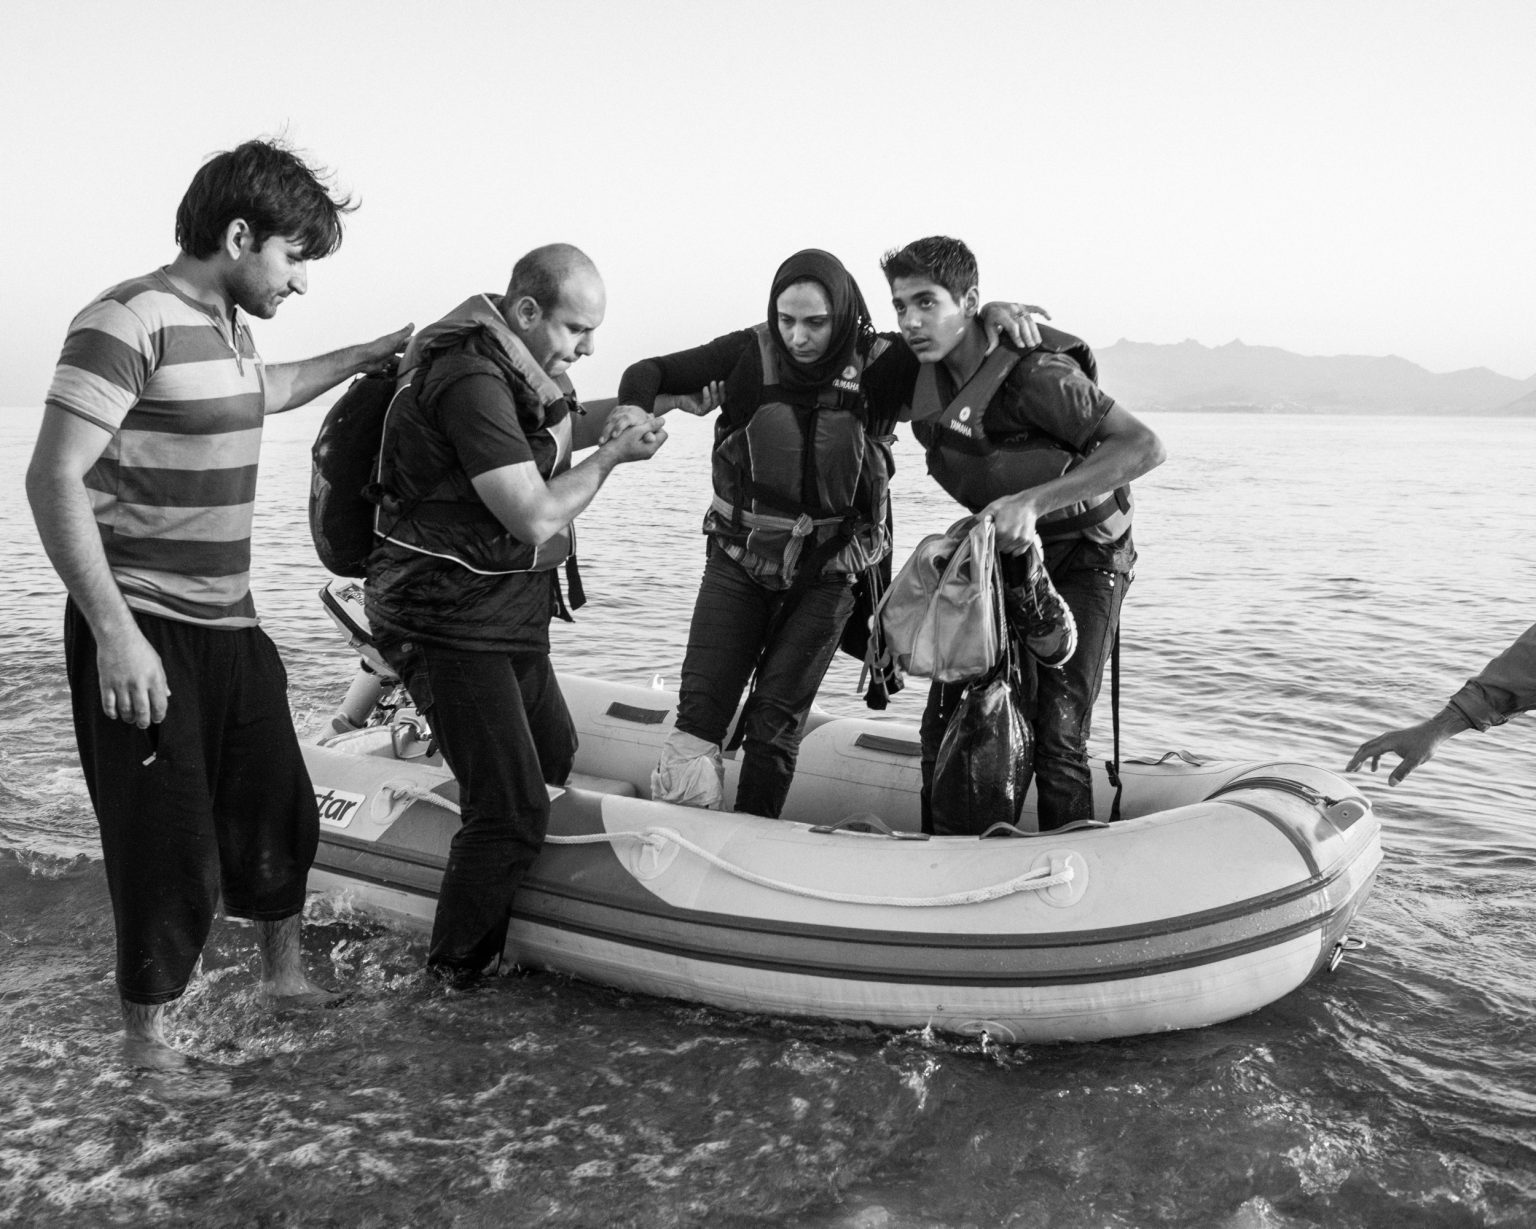 A Syrian refugee family arriving on the island of Kos from Turkey on a dingy. Kos, Greece, 2015